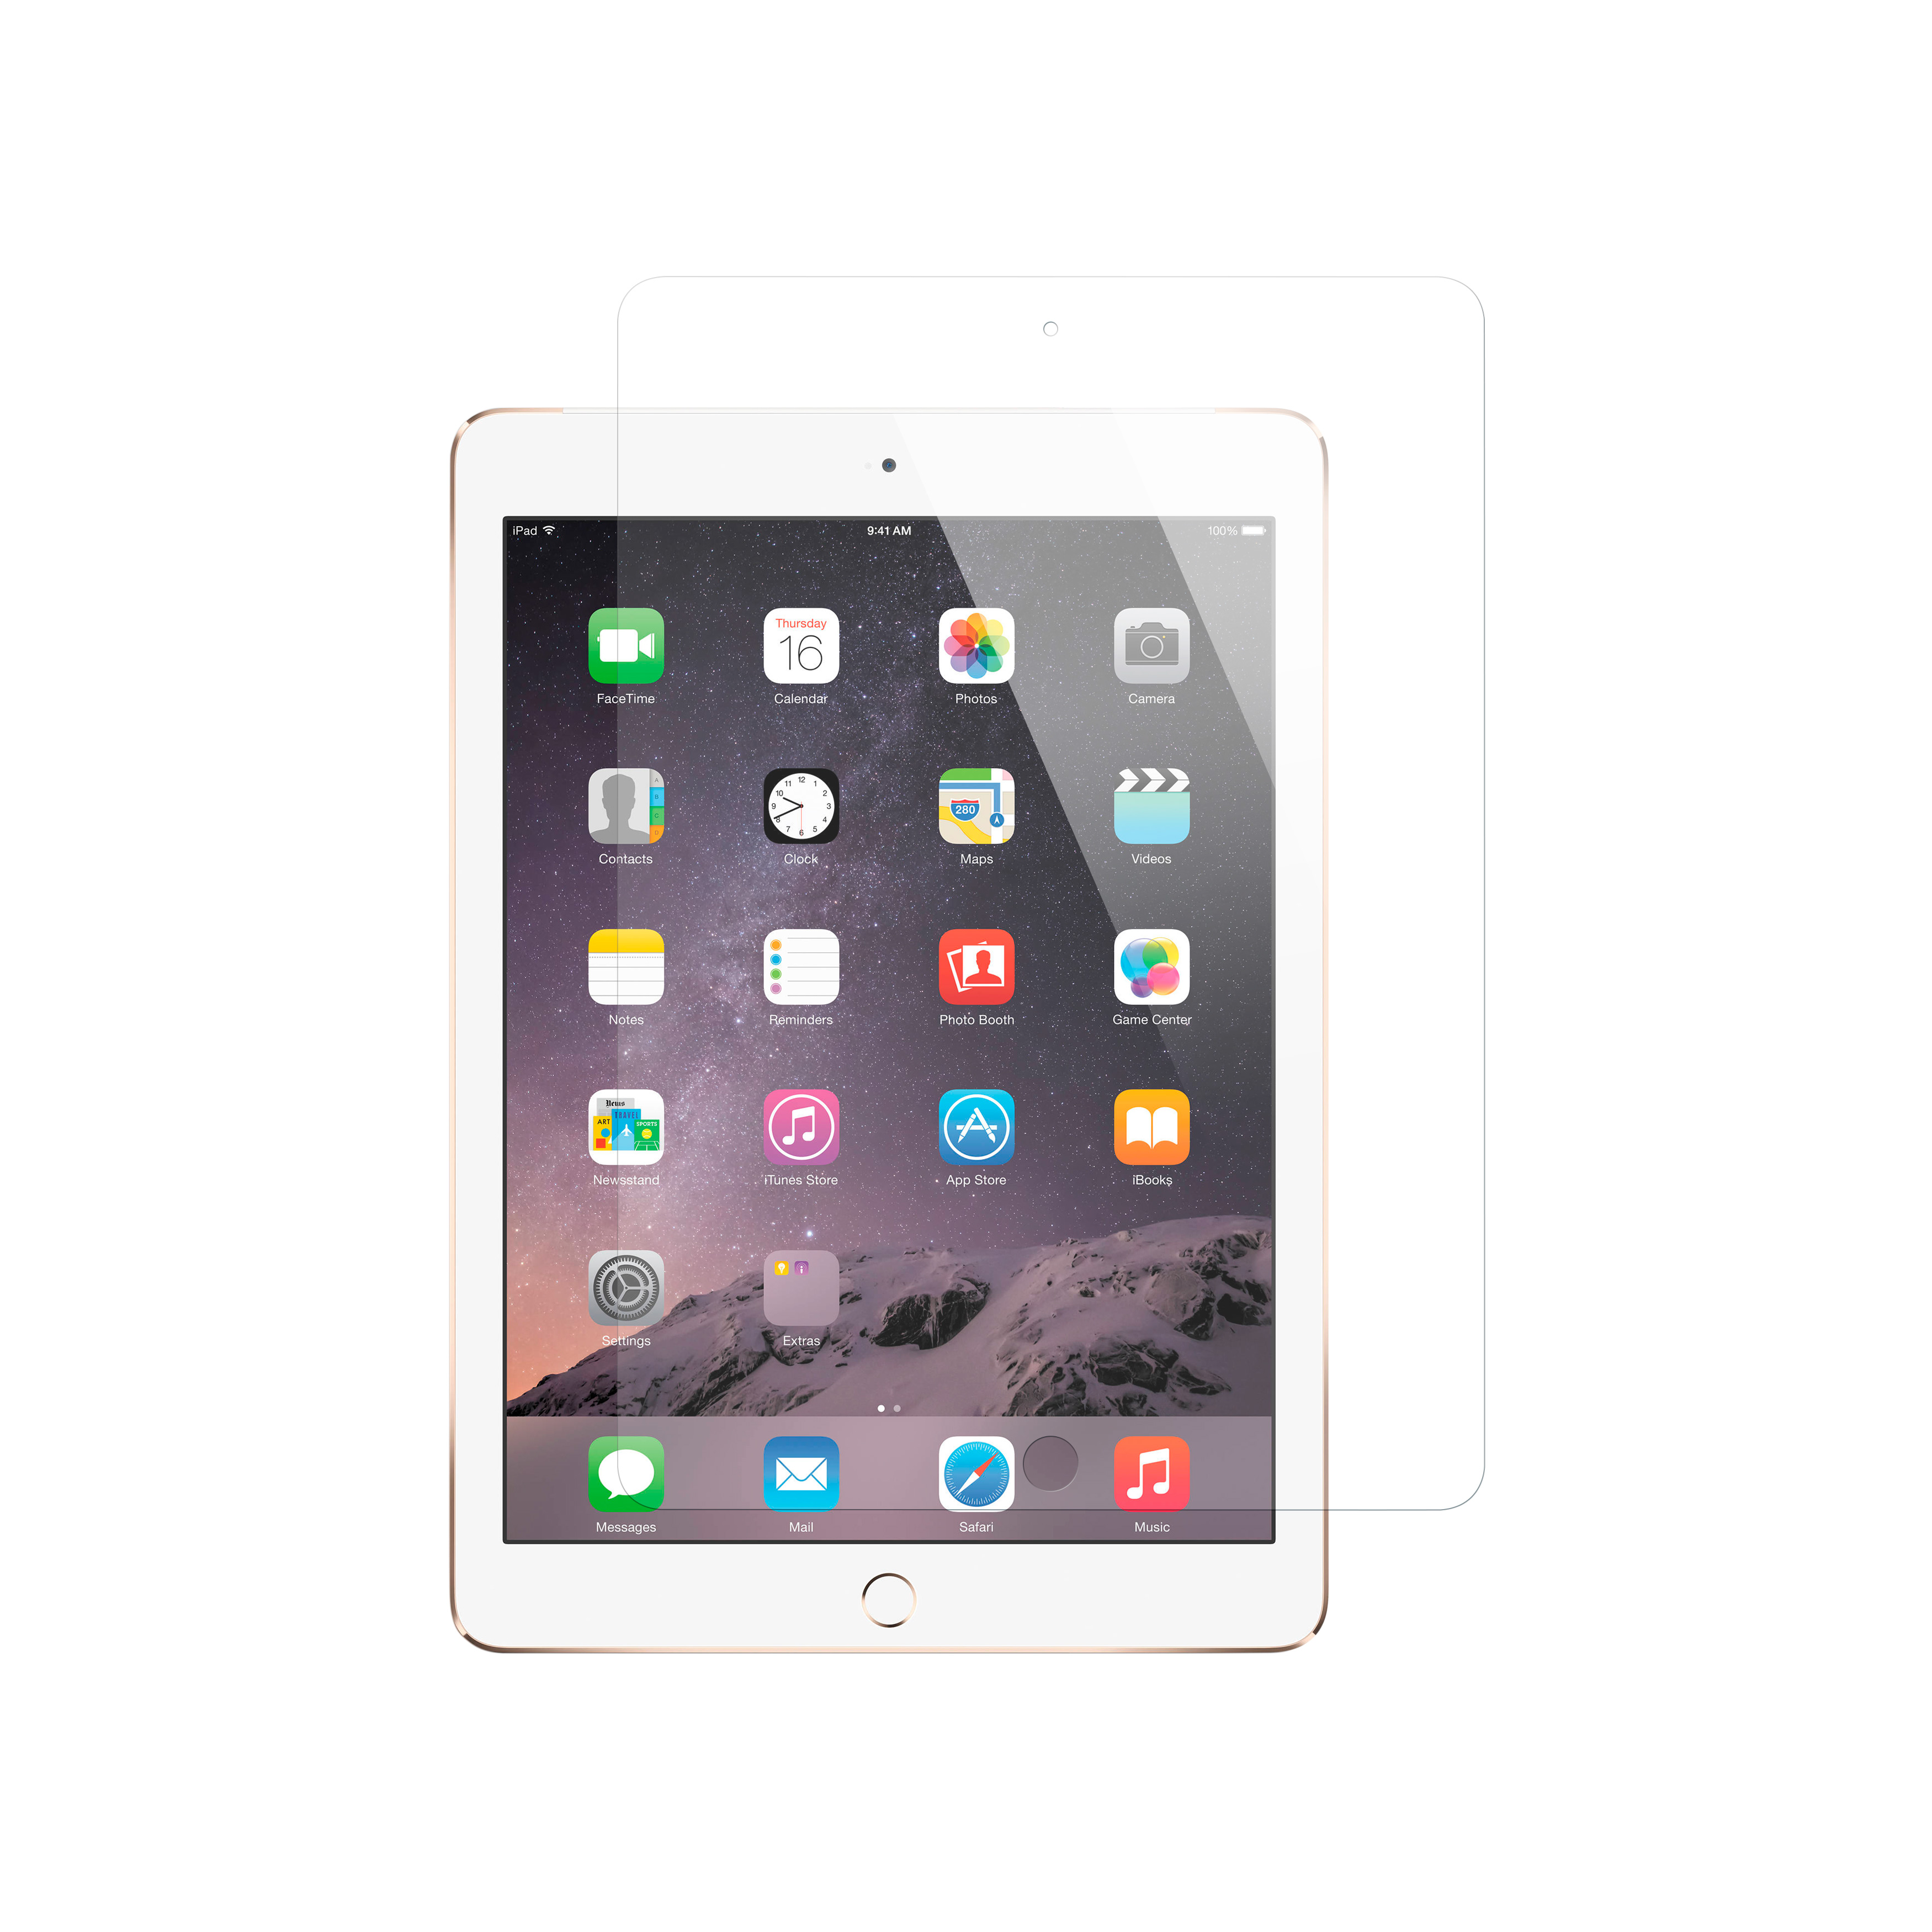 Ipad air cases ipad air covers ipad air ipad cases covers ipad 4 glass screen protector thecheapjerseys Images